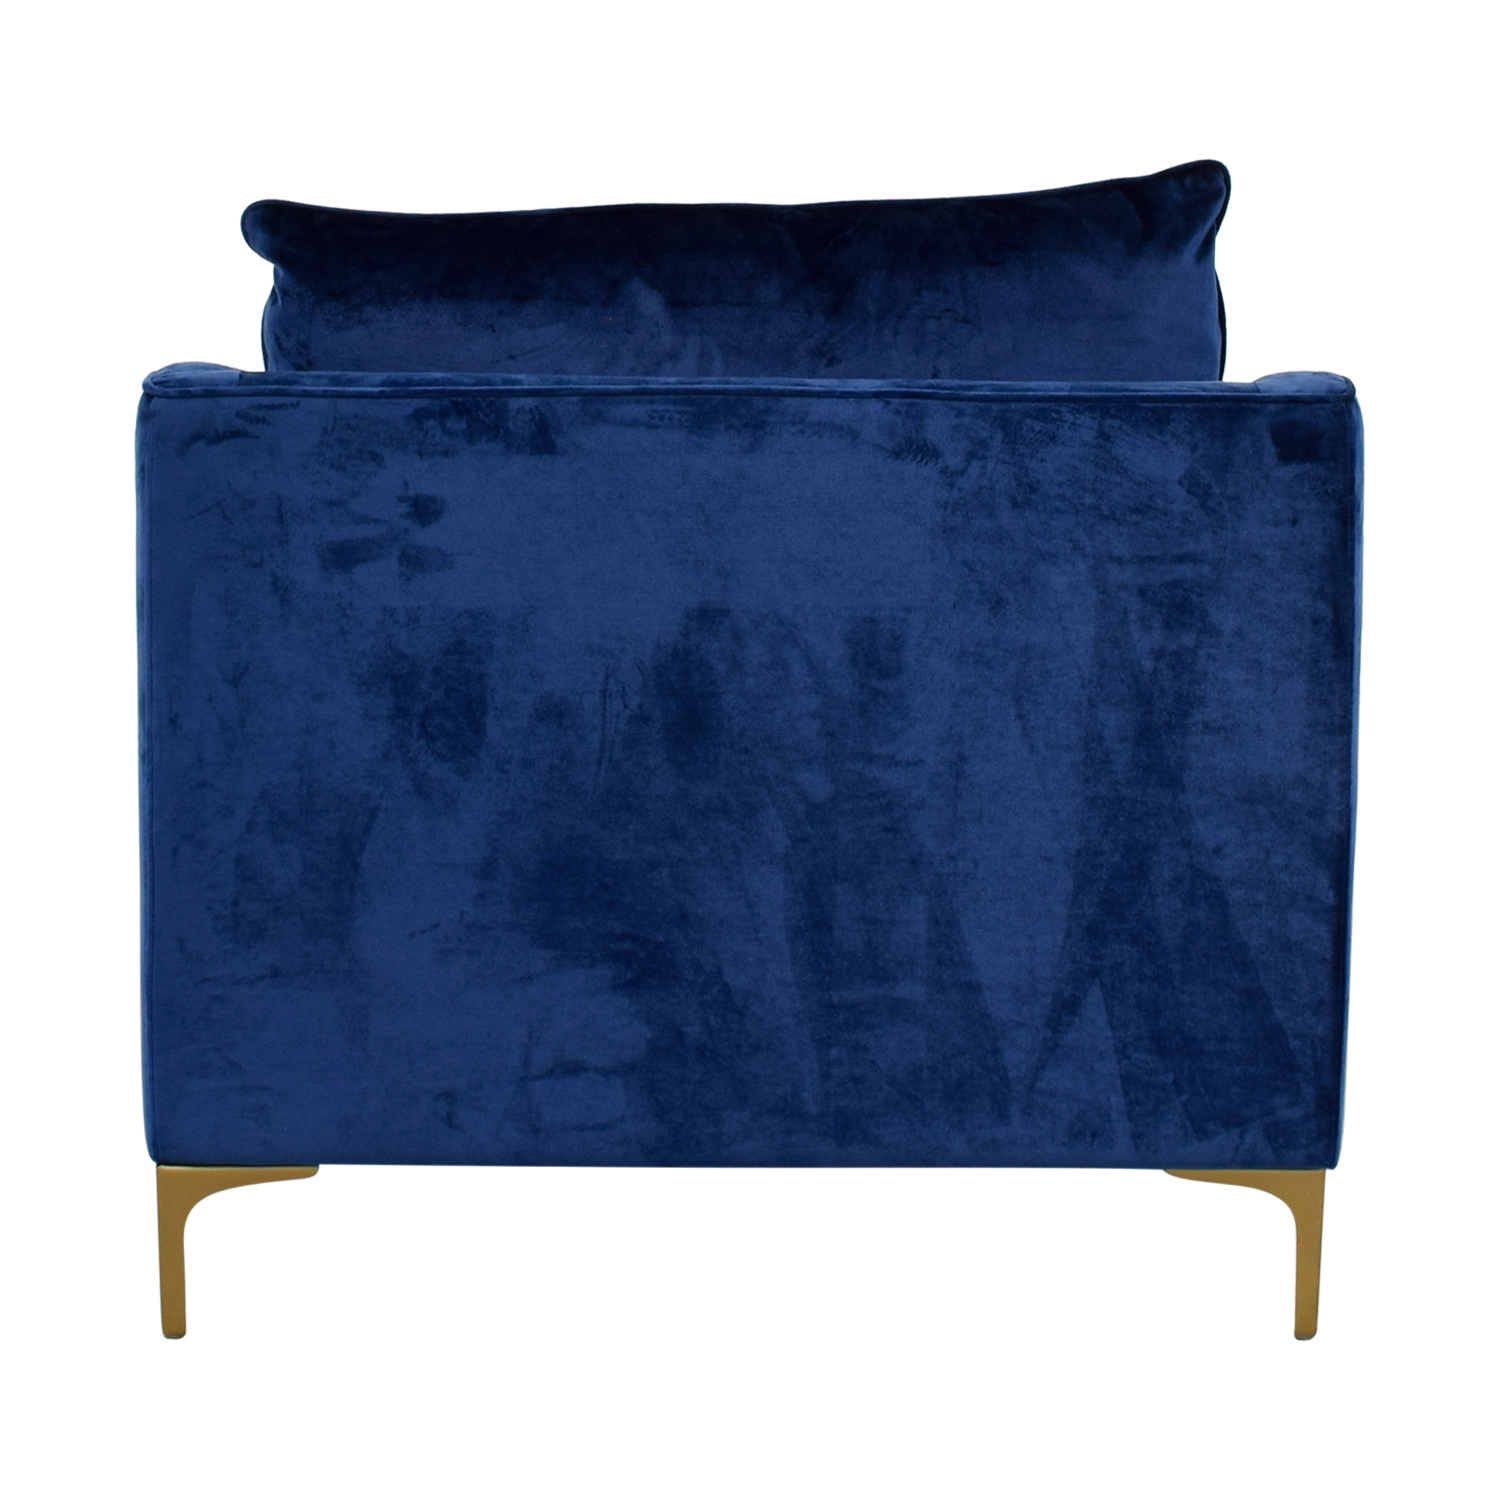 Mod Velvet Oxford Blue Accent Chair / Chairs